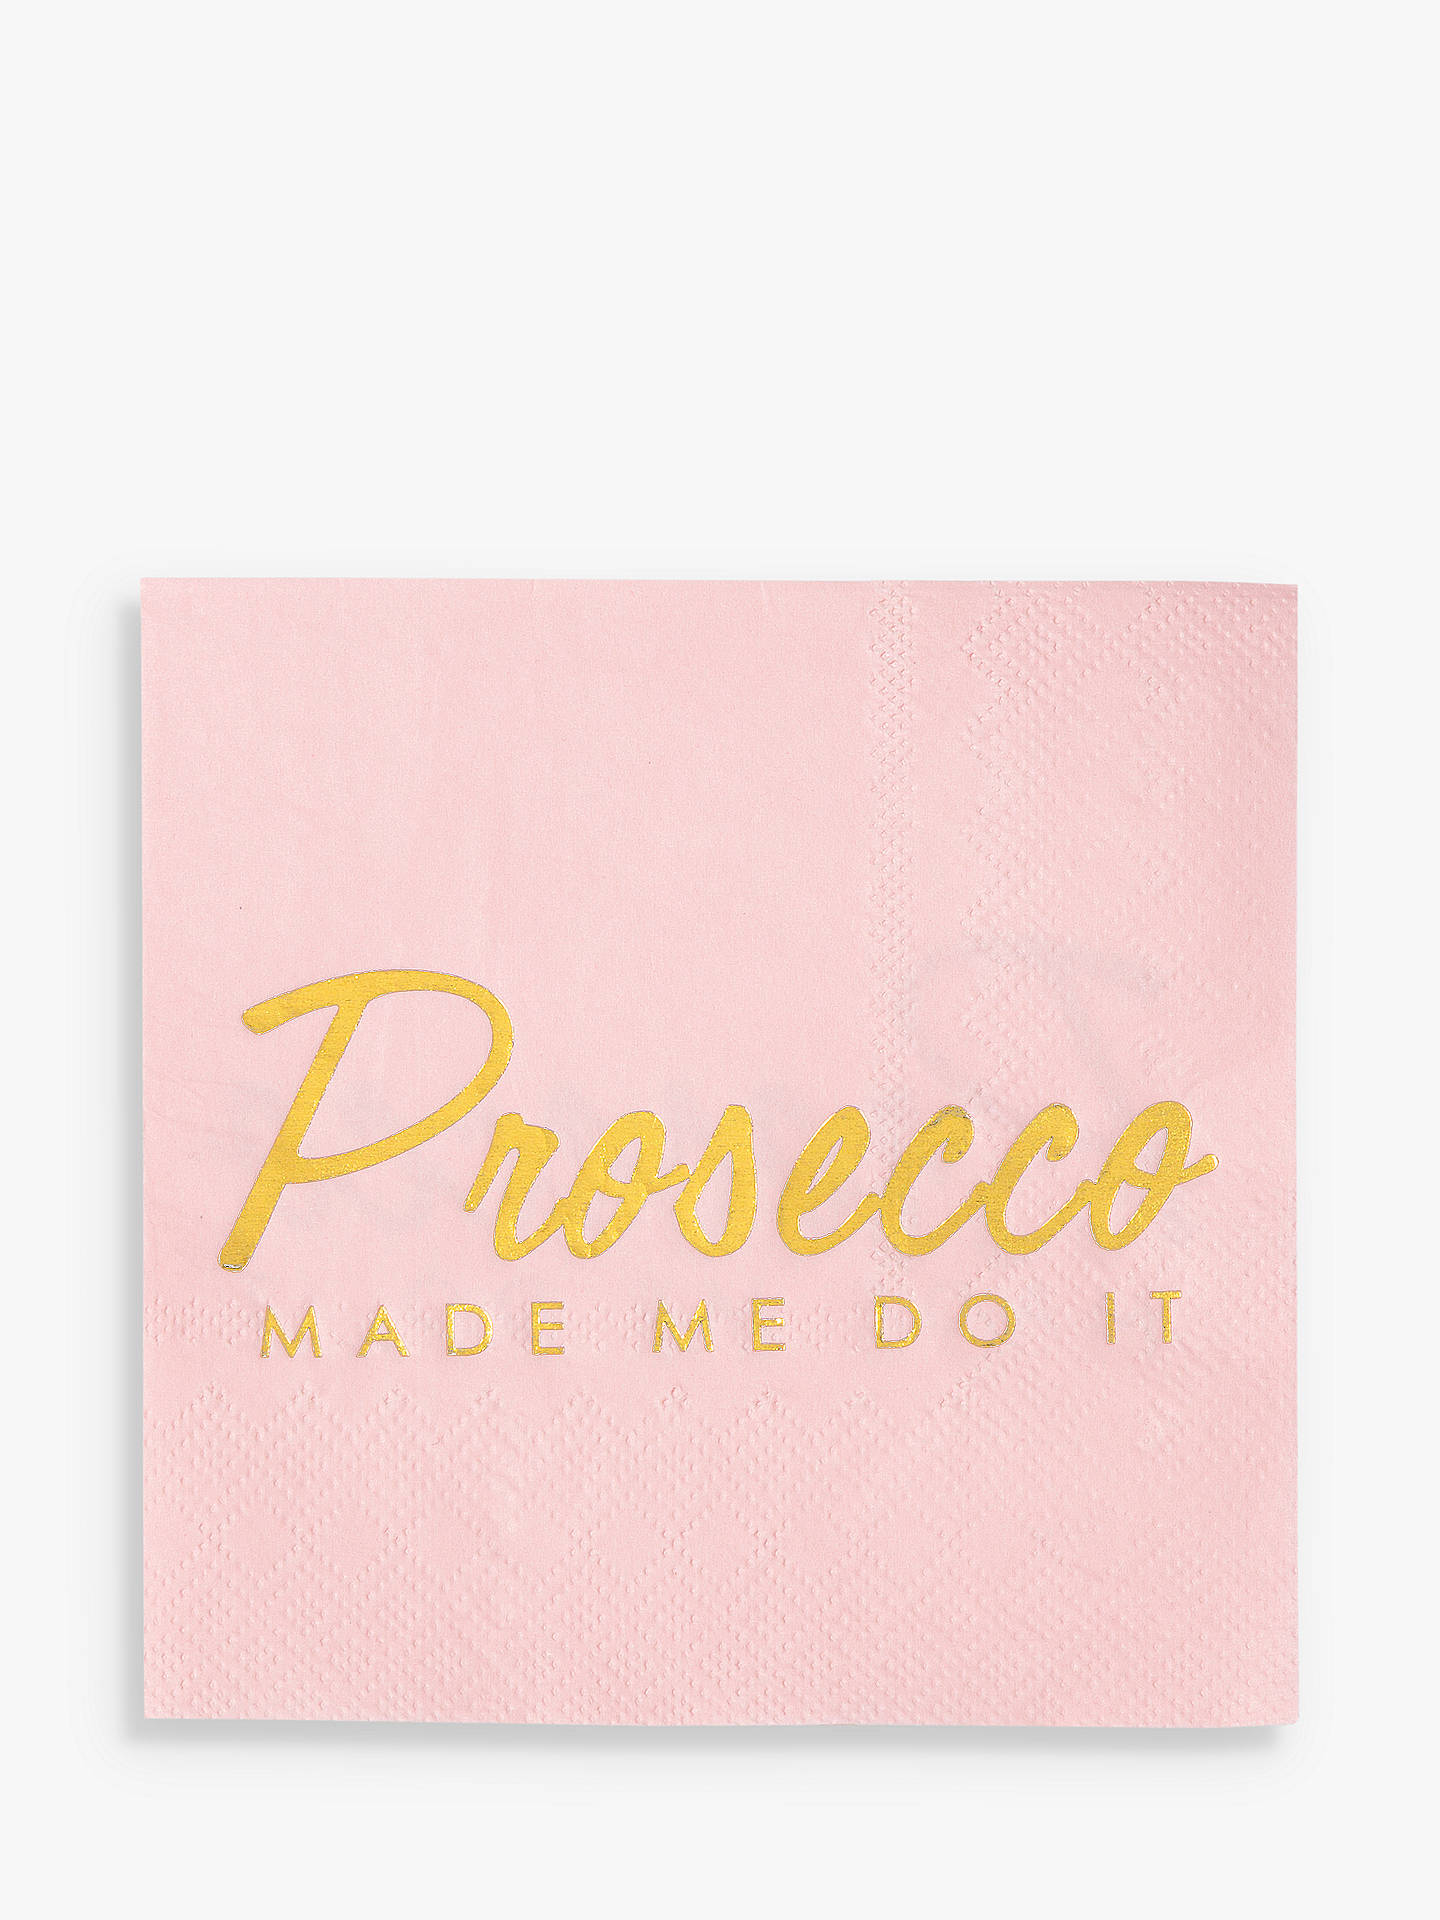 BuyTalking Tables Prosecco Made Me Do It Napkins, Pack of 16 Online at johnlewis.com